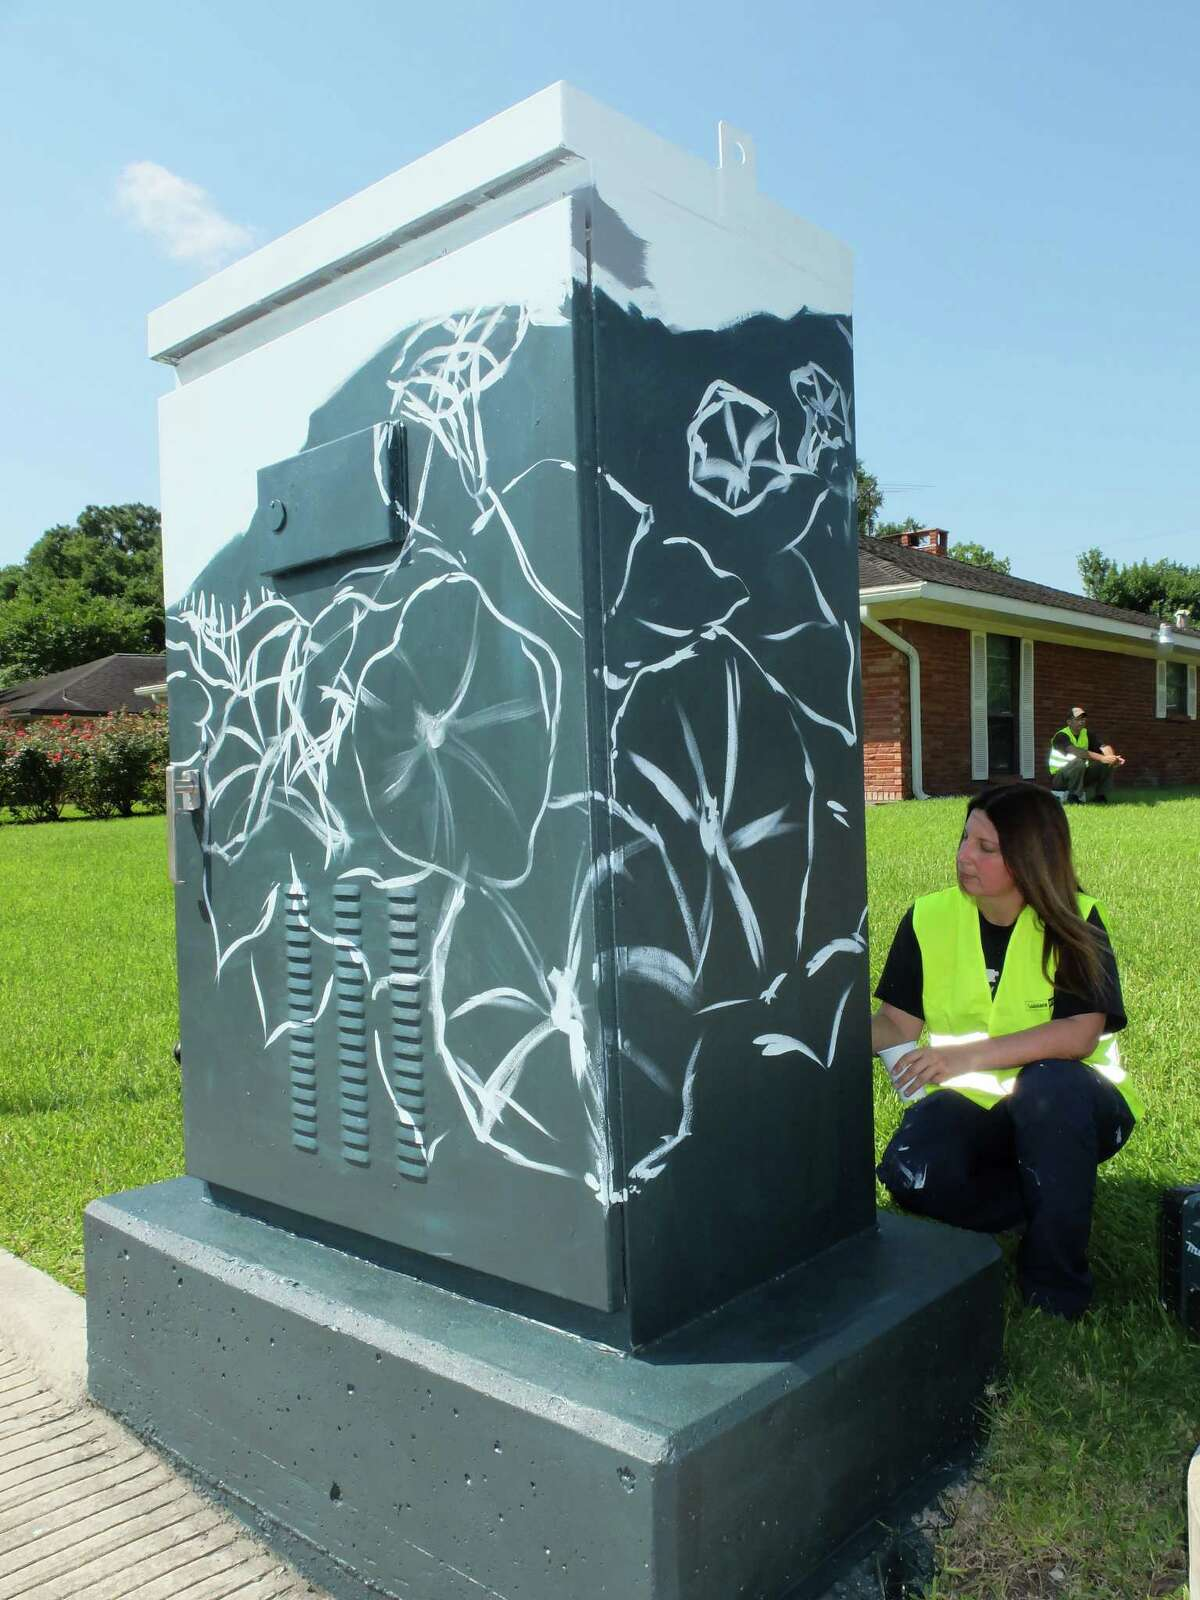 Artist Anat Ronen began painting the 8x4-foot traffic signal control cabinet at the corner of West Bellfort and Willowbend Streets with a morning glory design Thursday morning. By the day's end she had finished the first of 31 planned